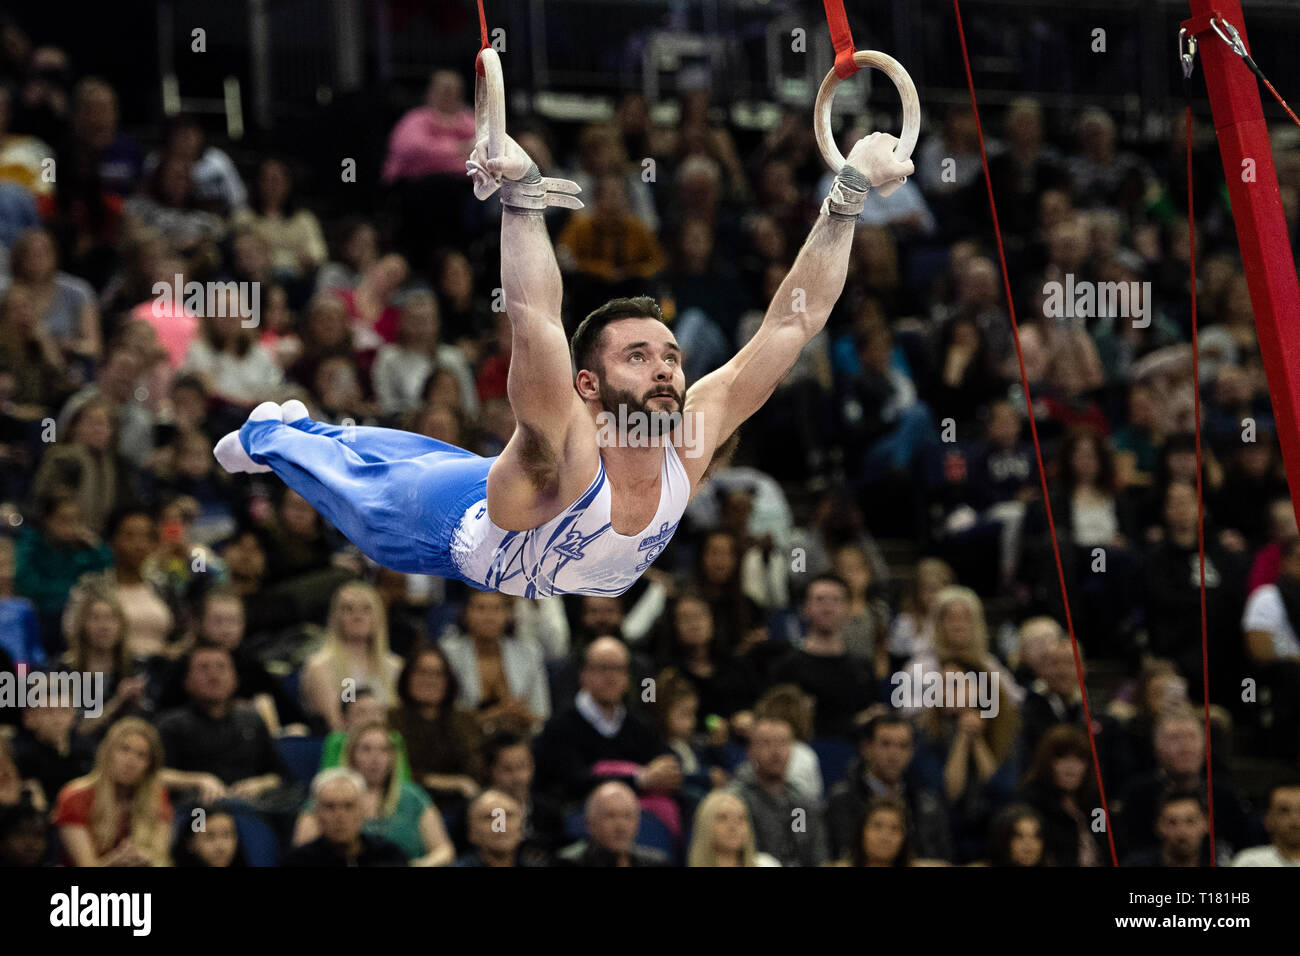 London, UK. 23rd Mar, 2019. during the Matchroom Multisport presents the 2019 Superstars of Gymnastics at The O2 Arena on Saturday, 23 March 2019. LONDON ENGLAND. Credit: Taka Wu/Alamy Live News Stock Photo